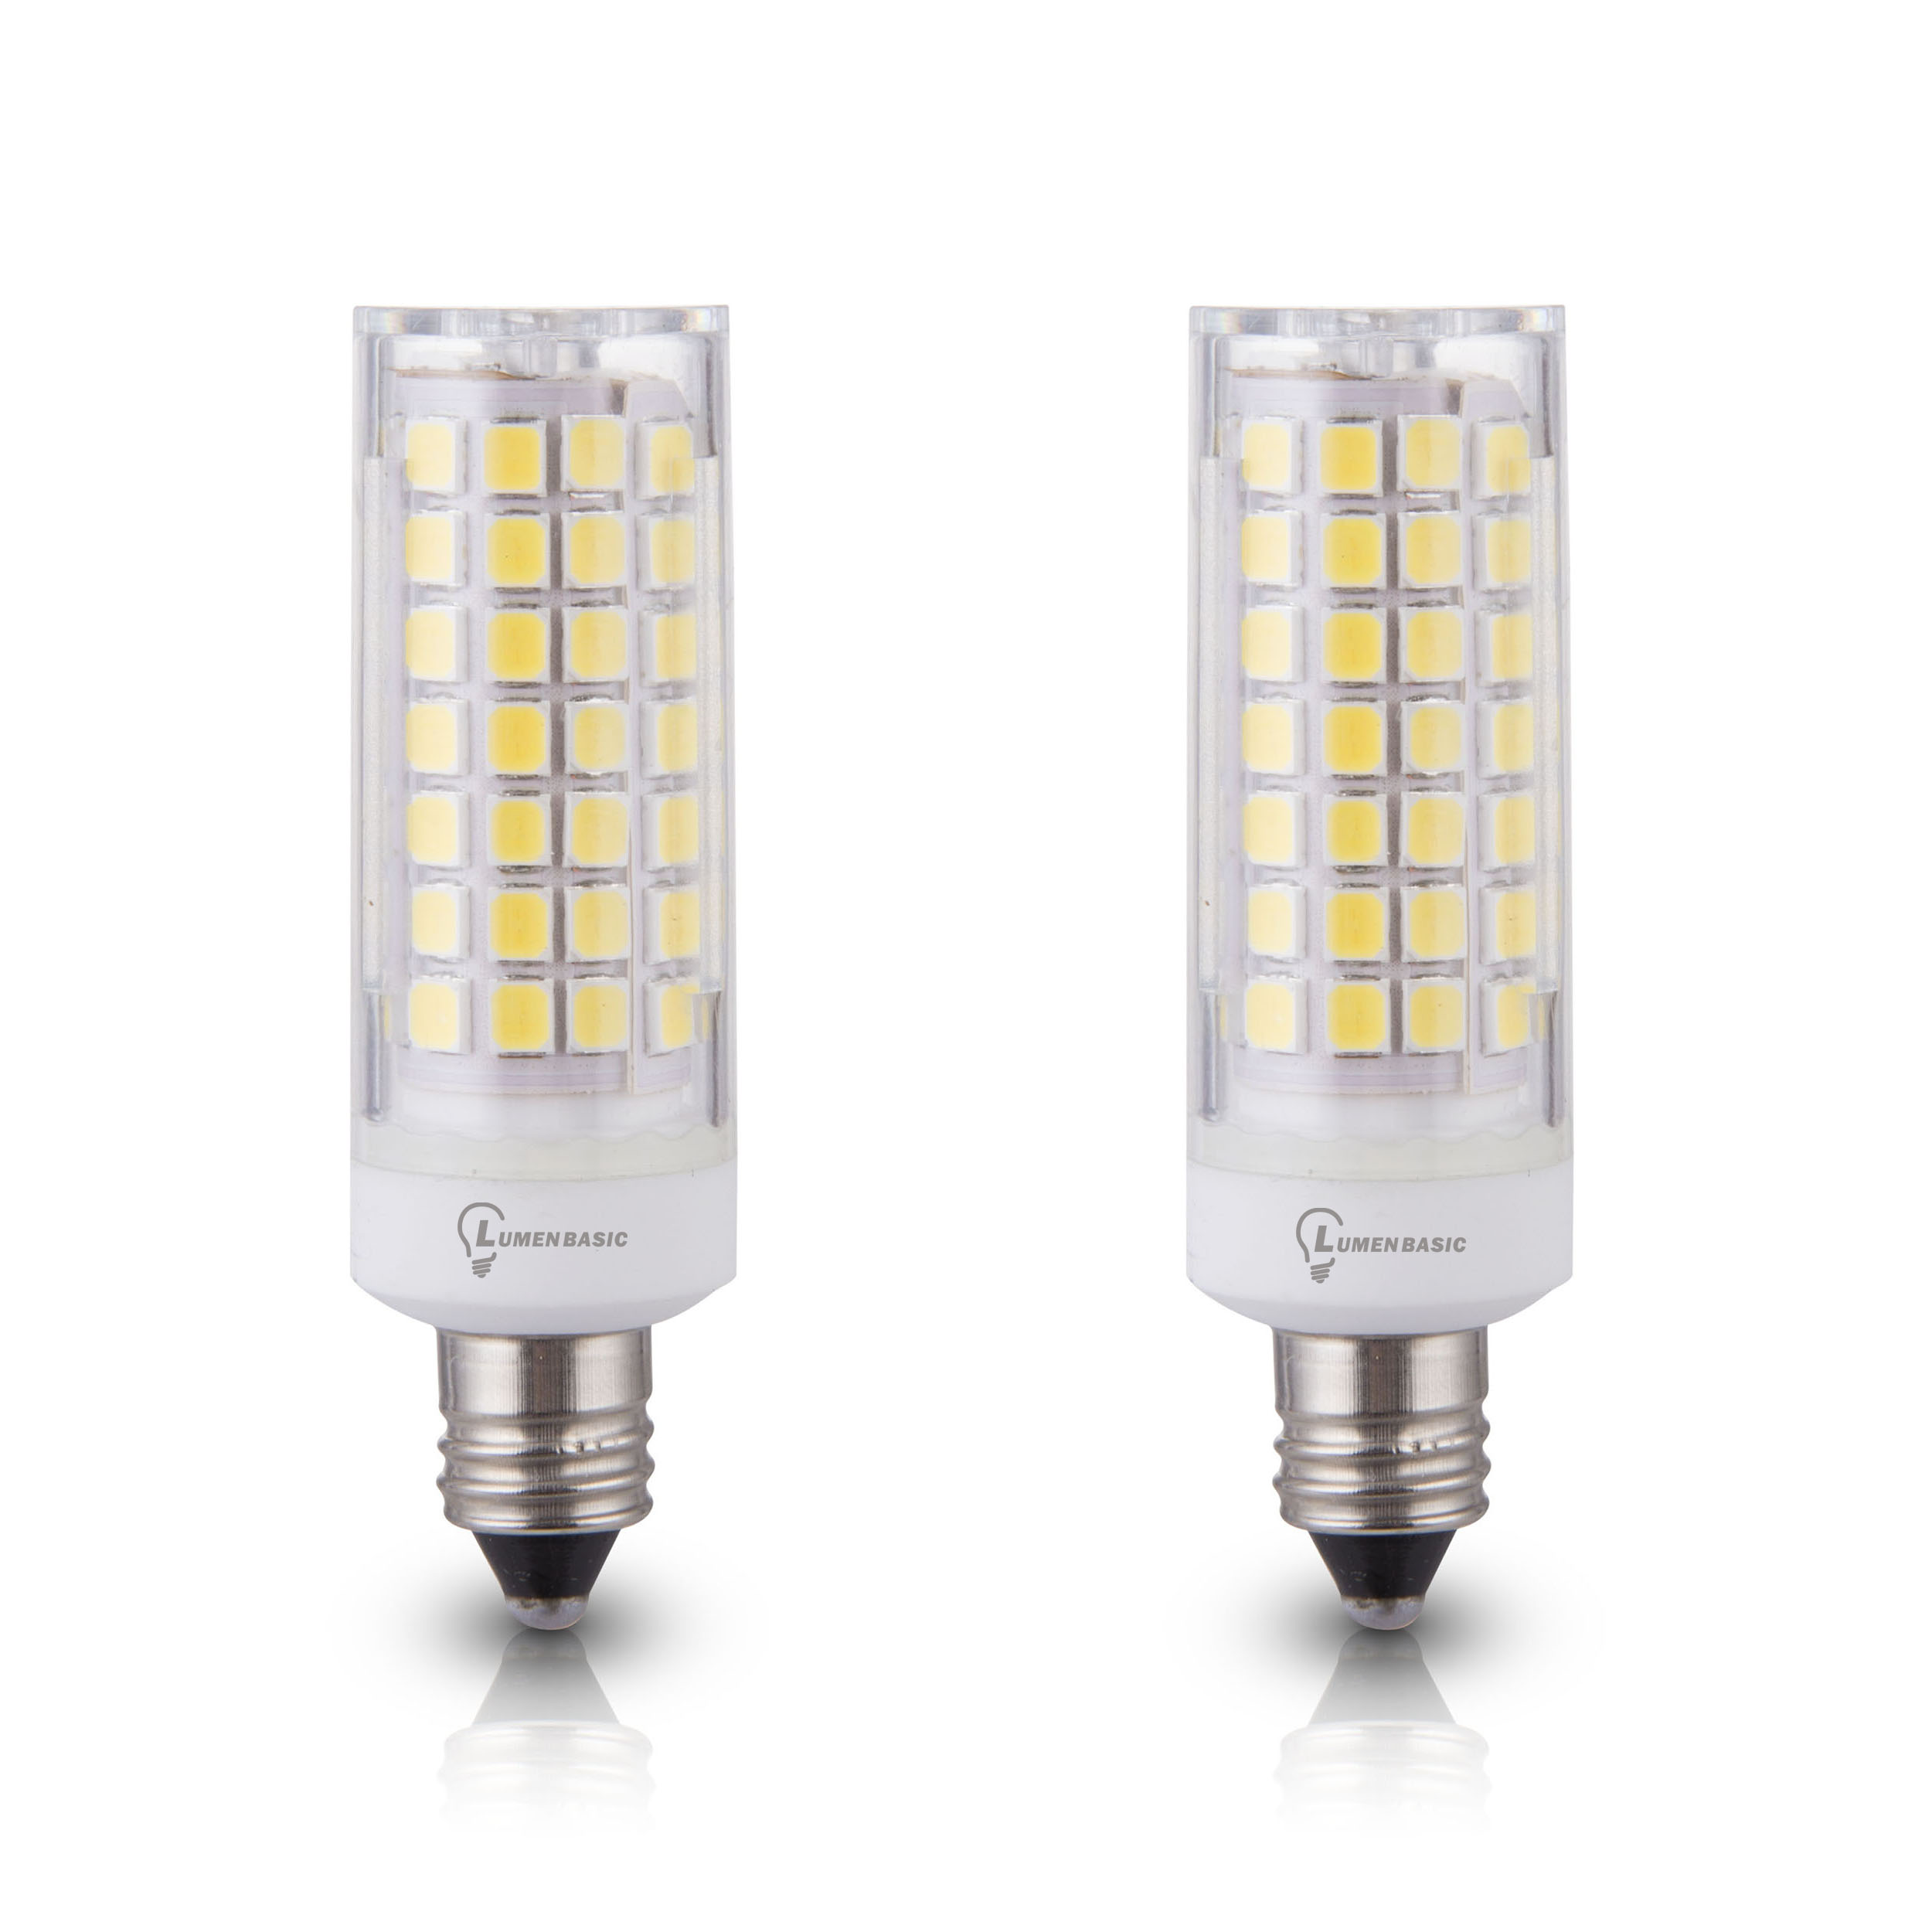 Led Verlichting 50 Lampjes Led Lamp 50 Lumen